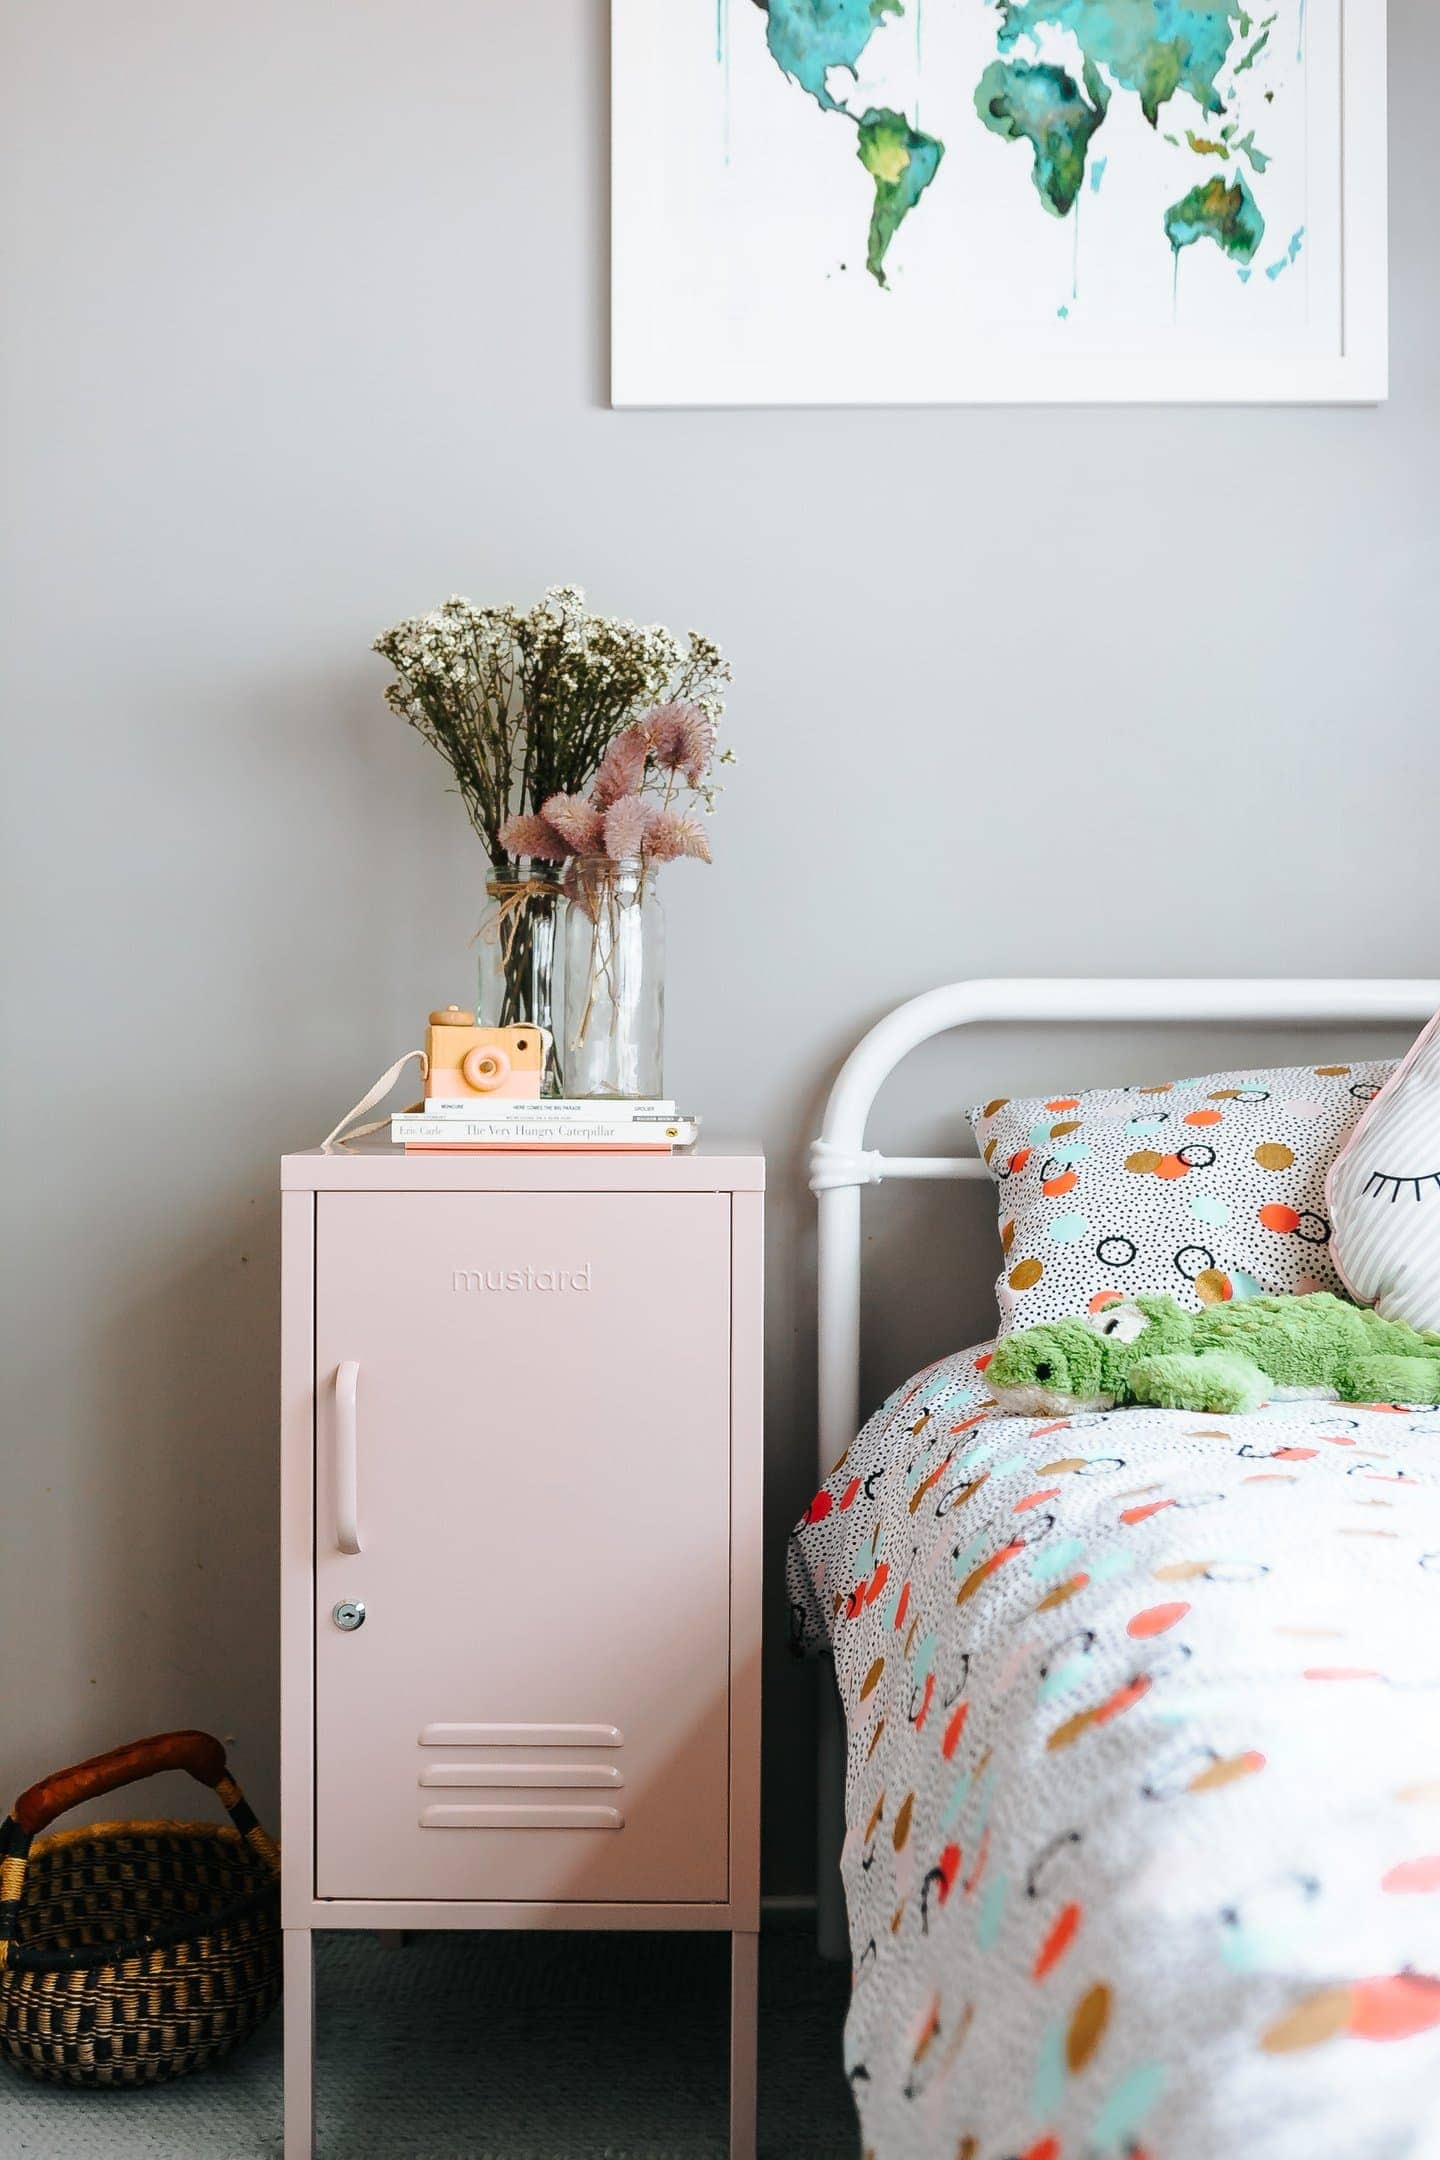 the shorty pink locker bedside from mustard